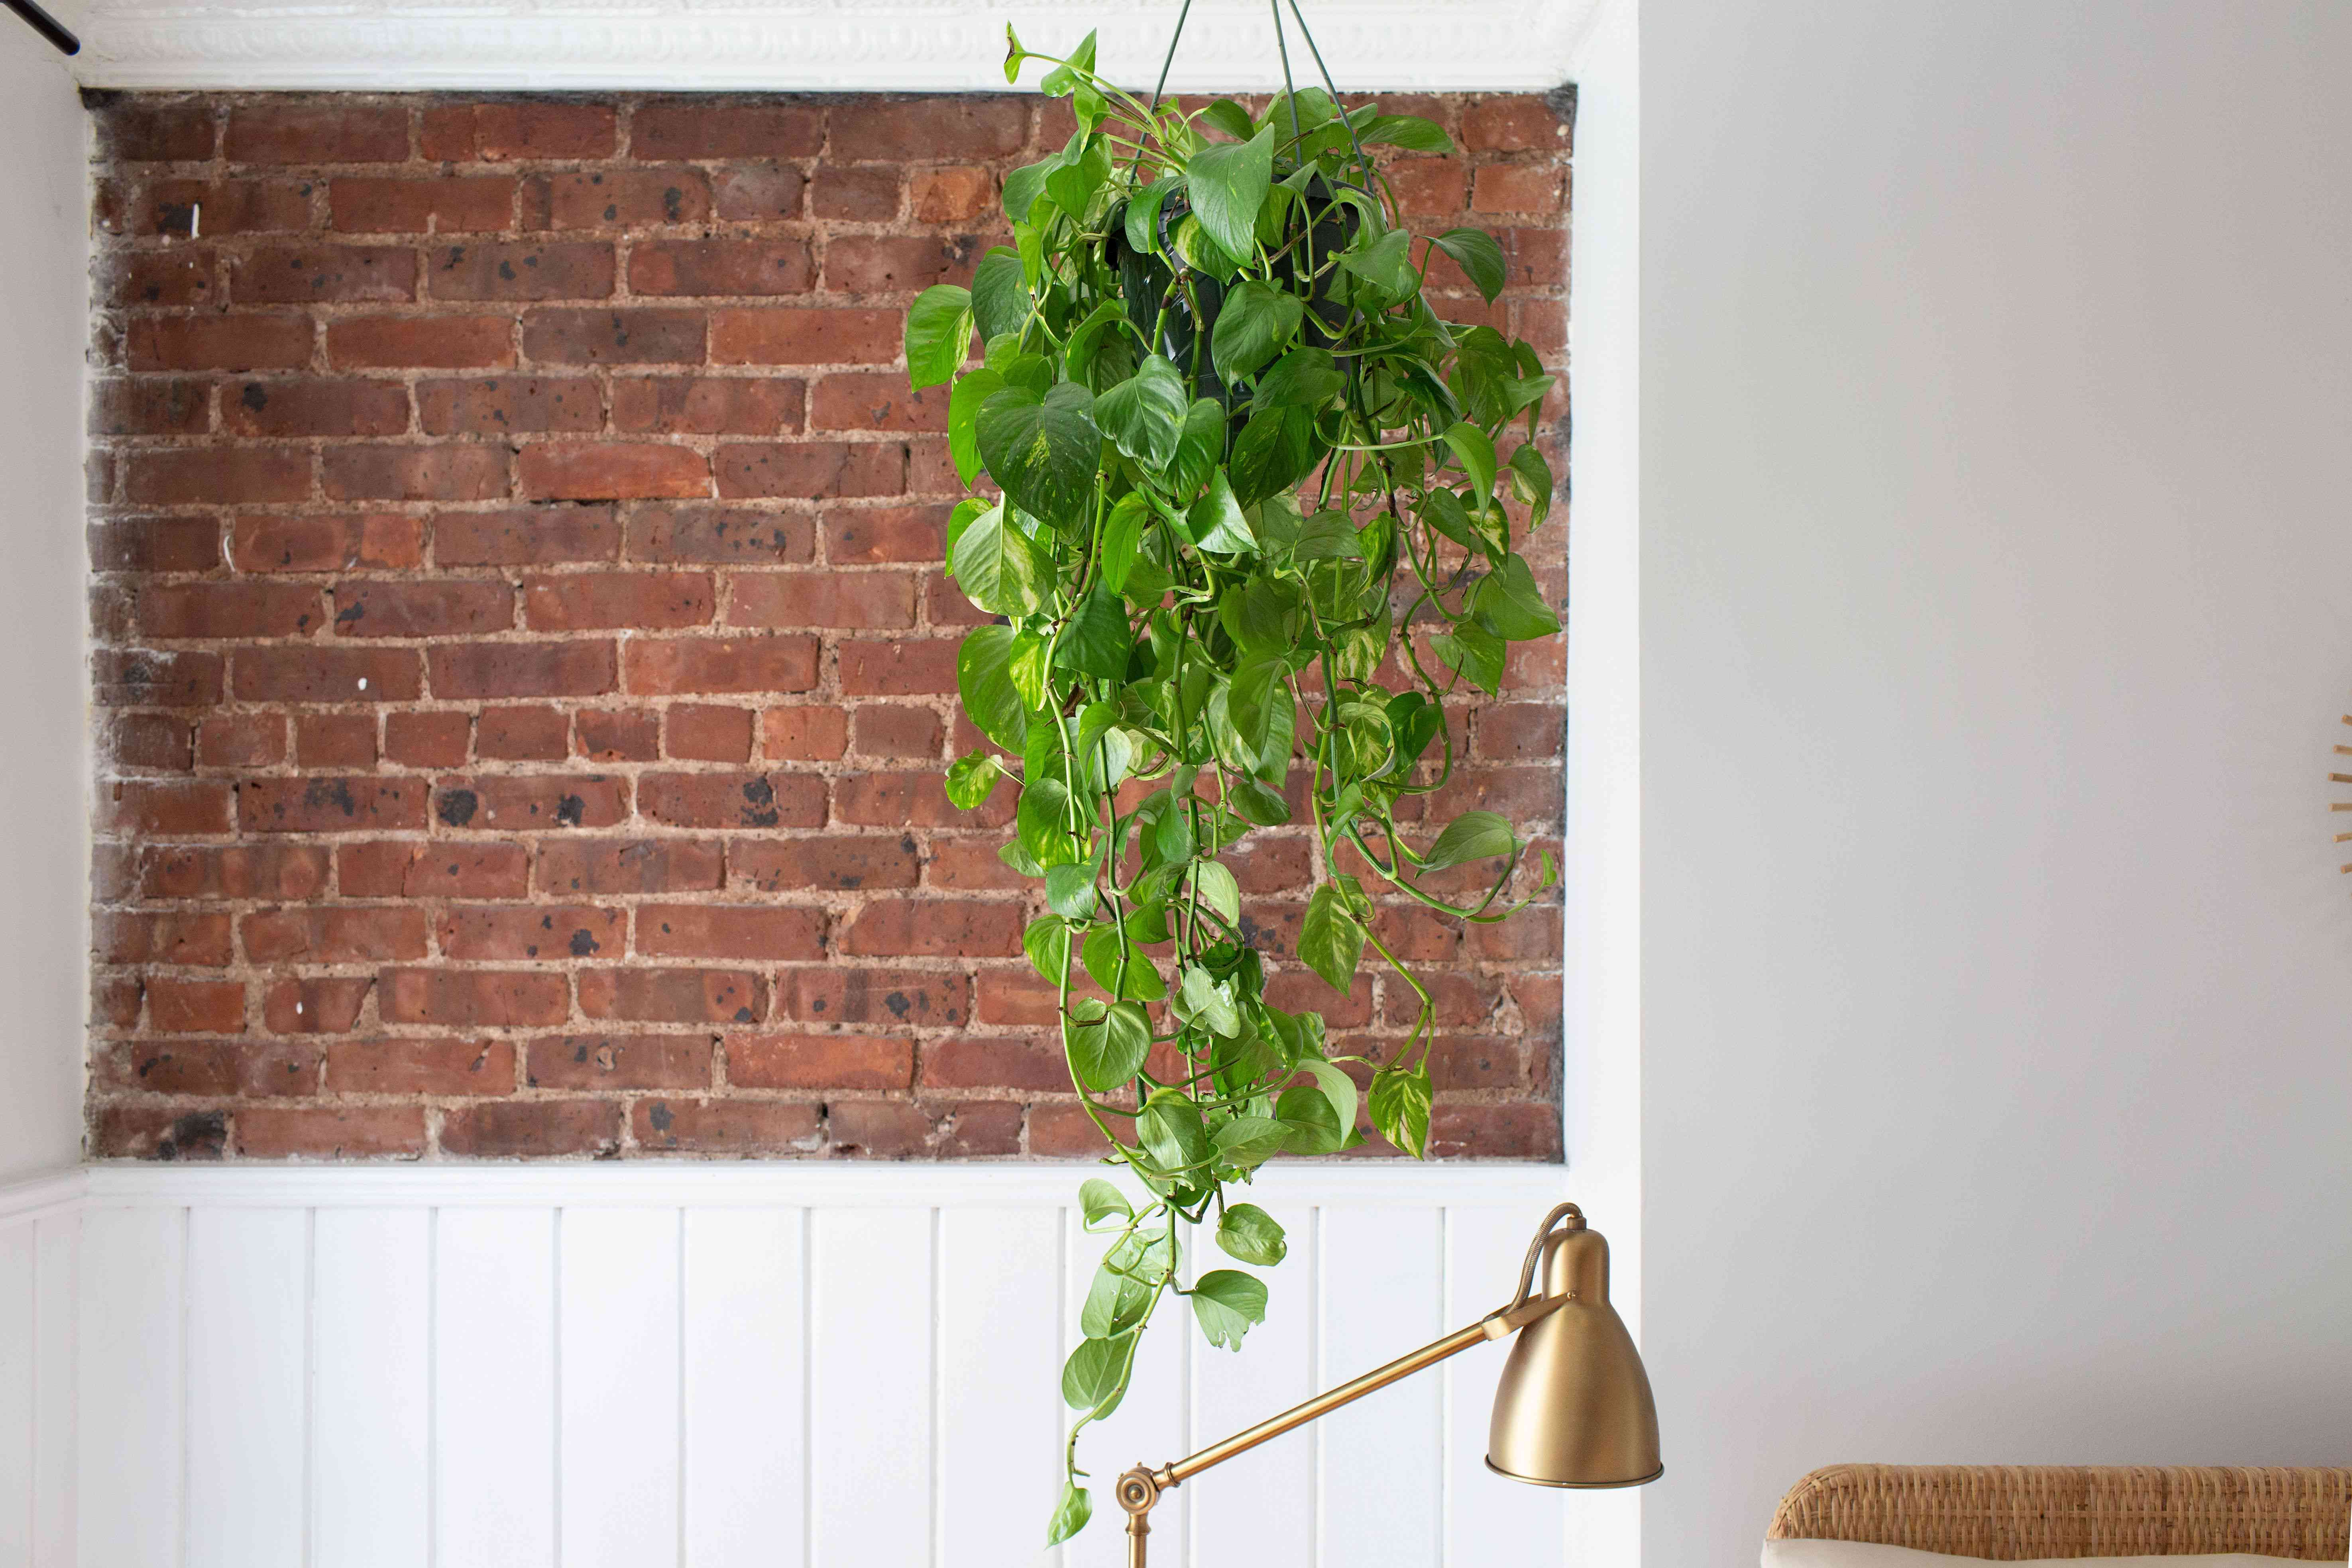 Golden pothos plant hanging from ceiling in from of brick wall and above gold lamp